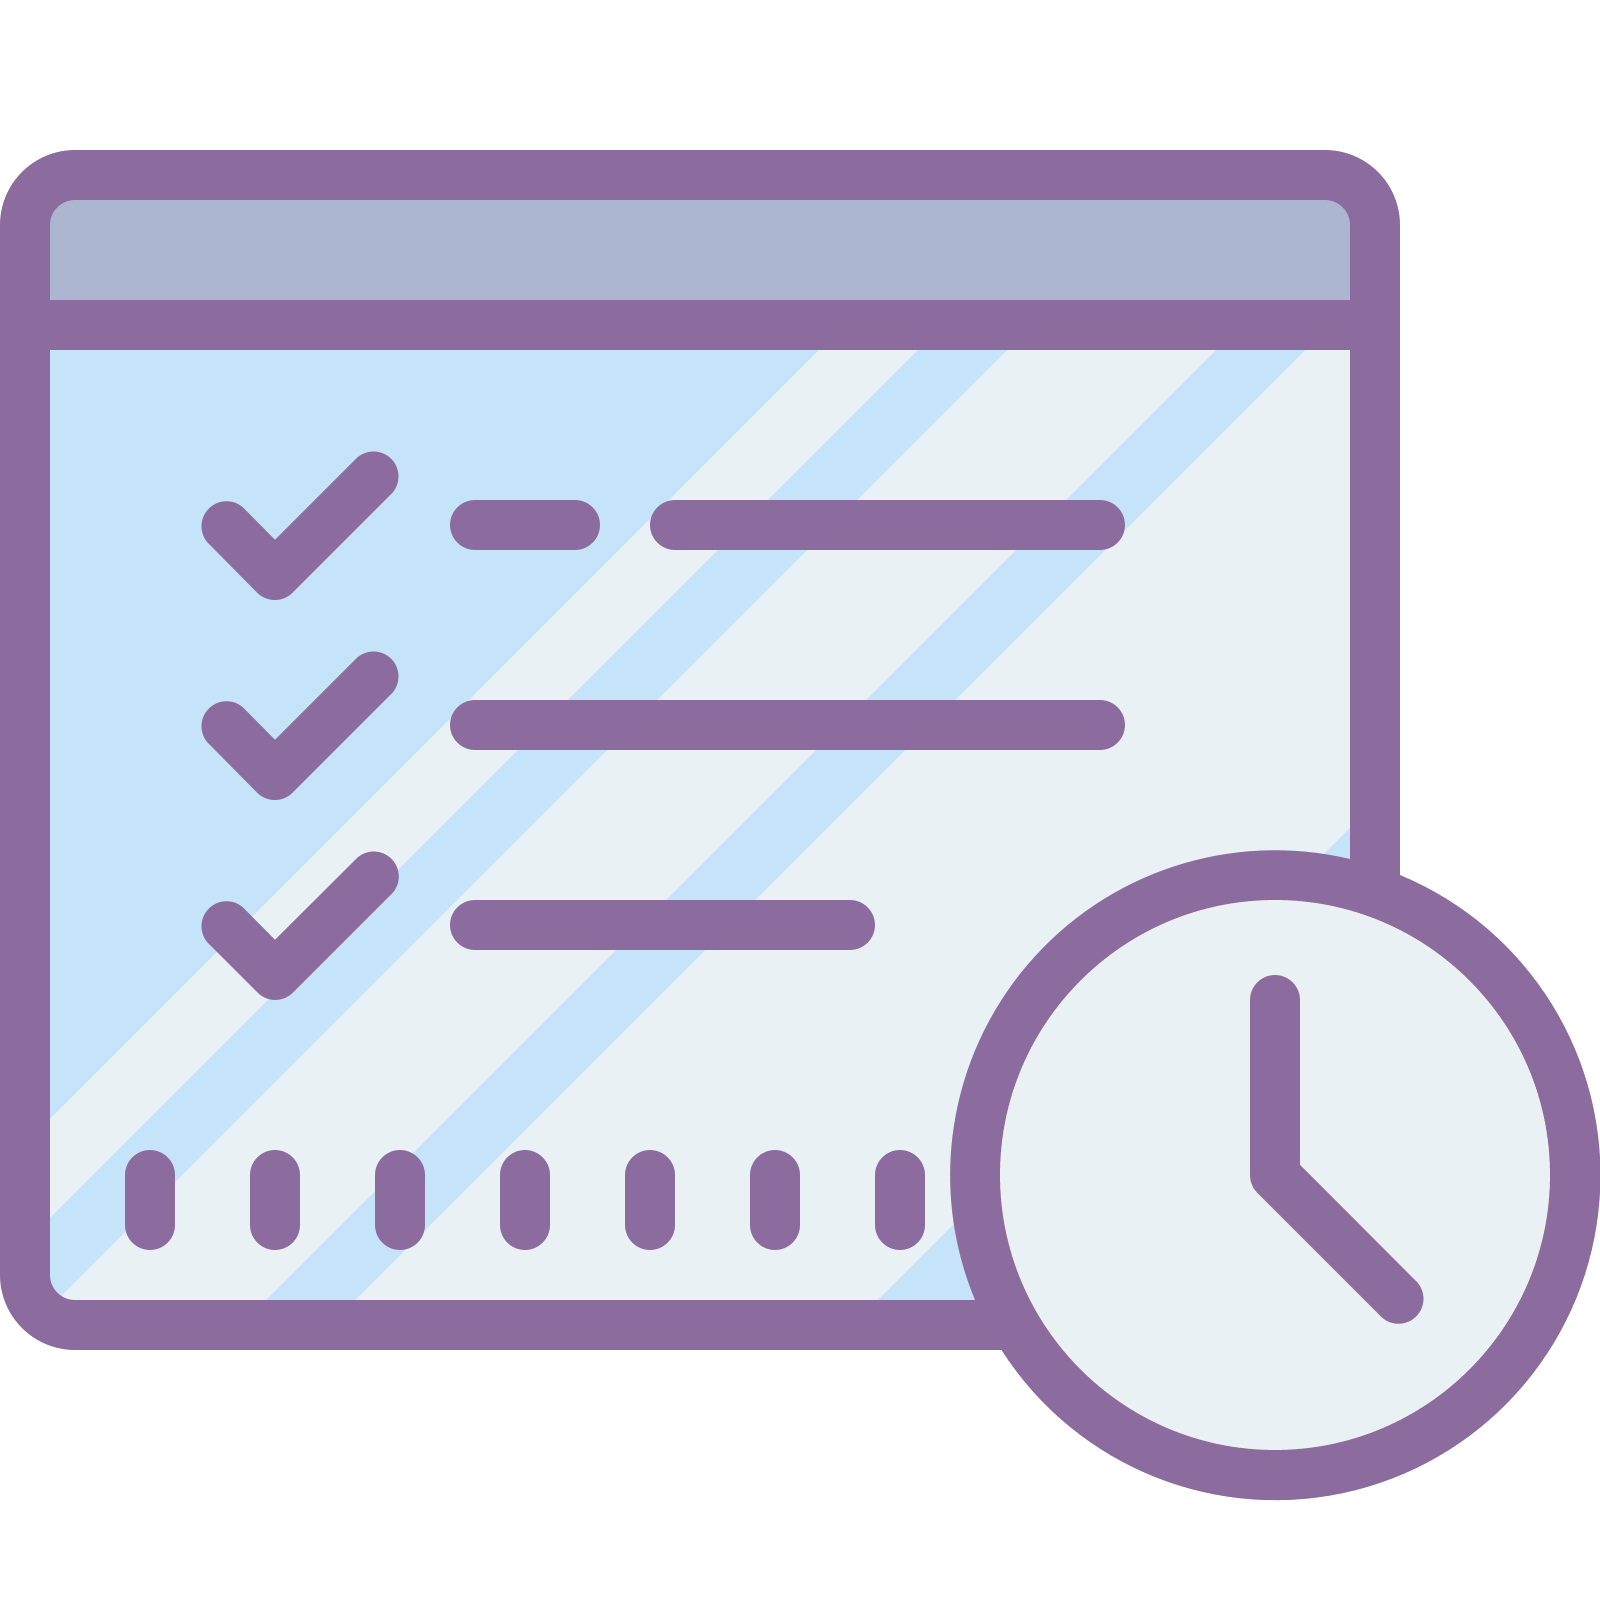 Time Sheet Icon #36068.